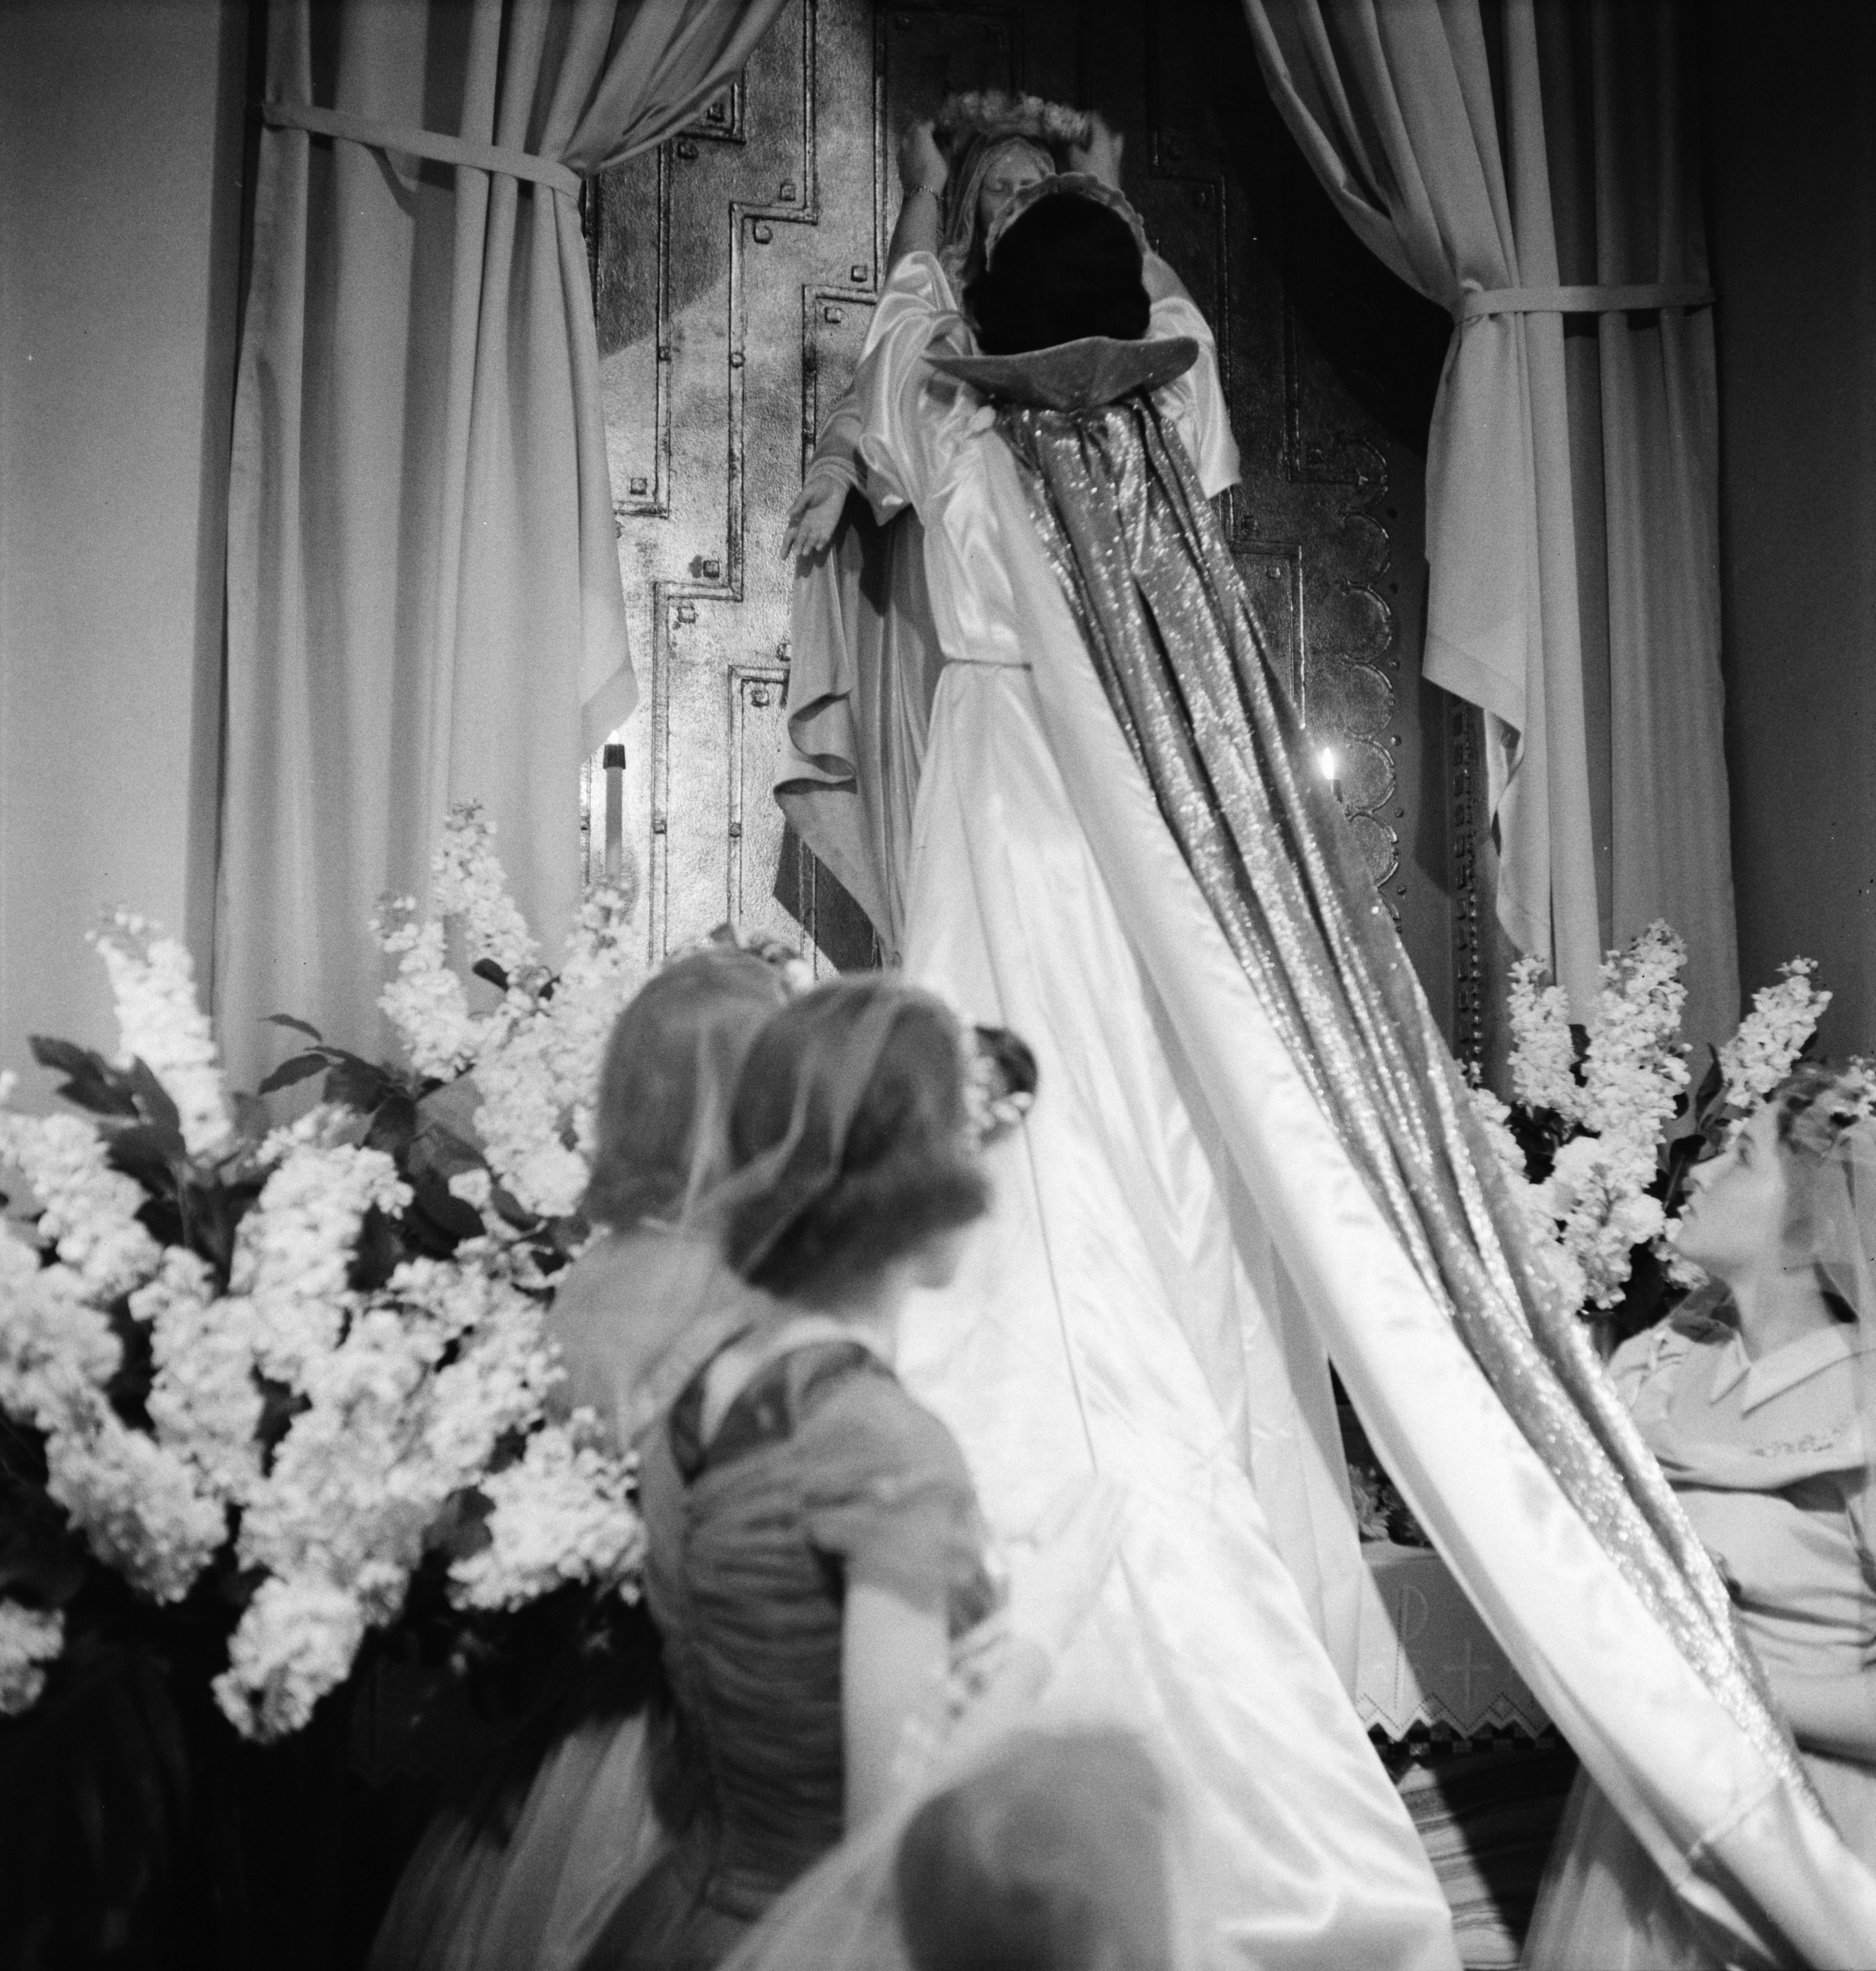 Bonnie Samar Places The Crown Of Flowers During The May Crowning Ceremony at St. John's Catholic Church In Ypsilanti, May 1957 image